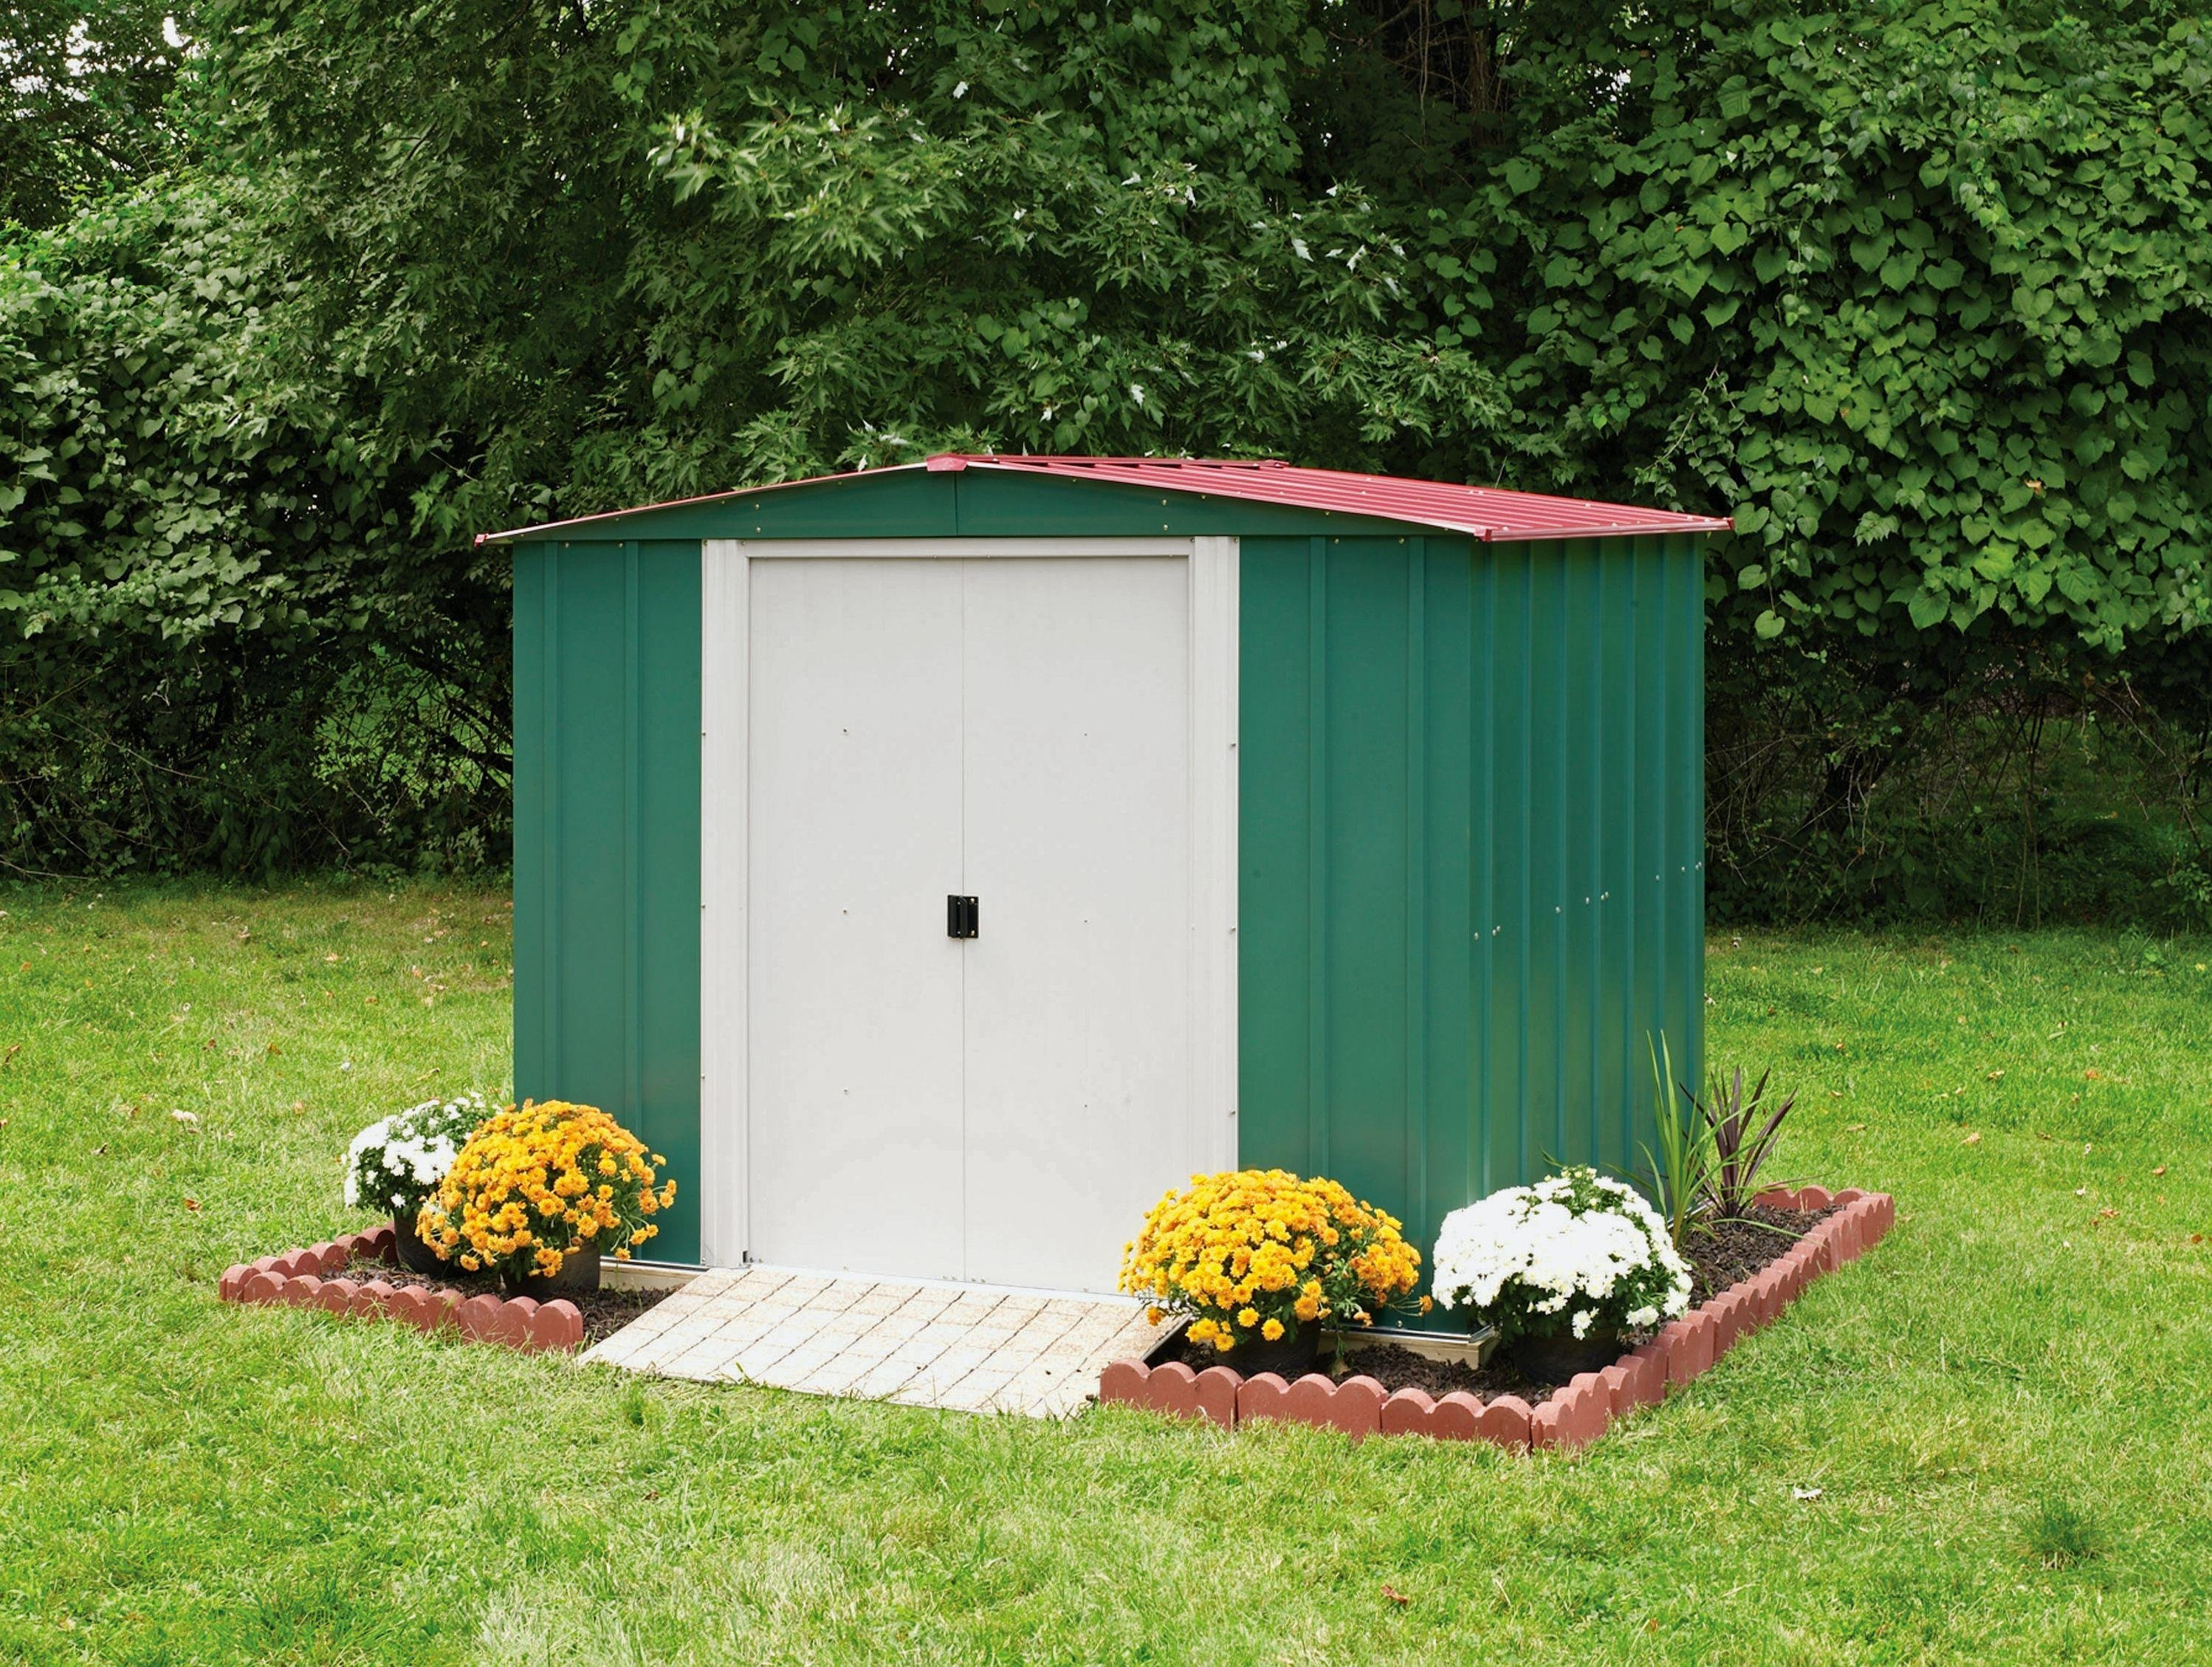 Garden Sheds 6x7 buy arrow metal garden shed - 8 x 6ft at argos.co.uk - your online